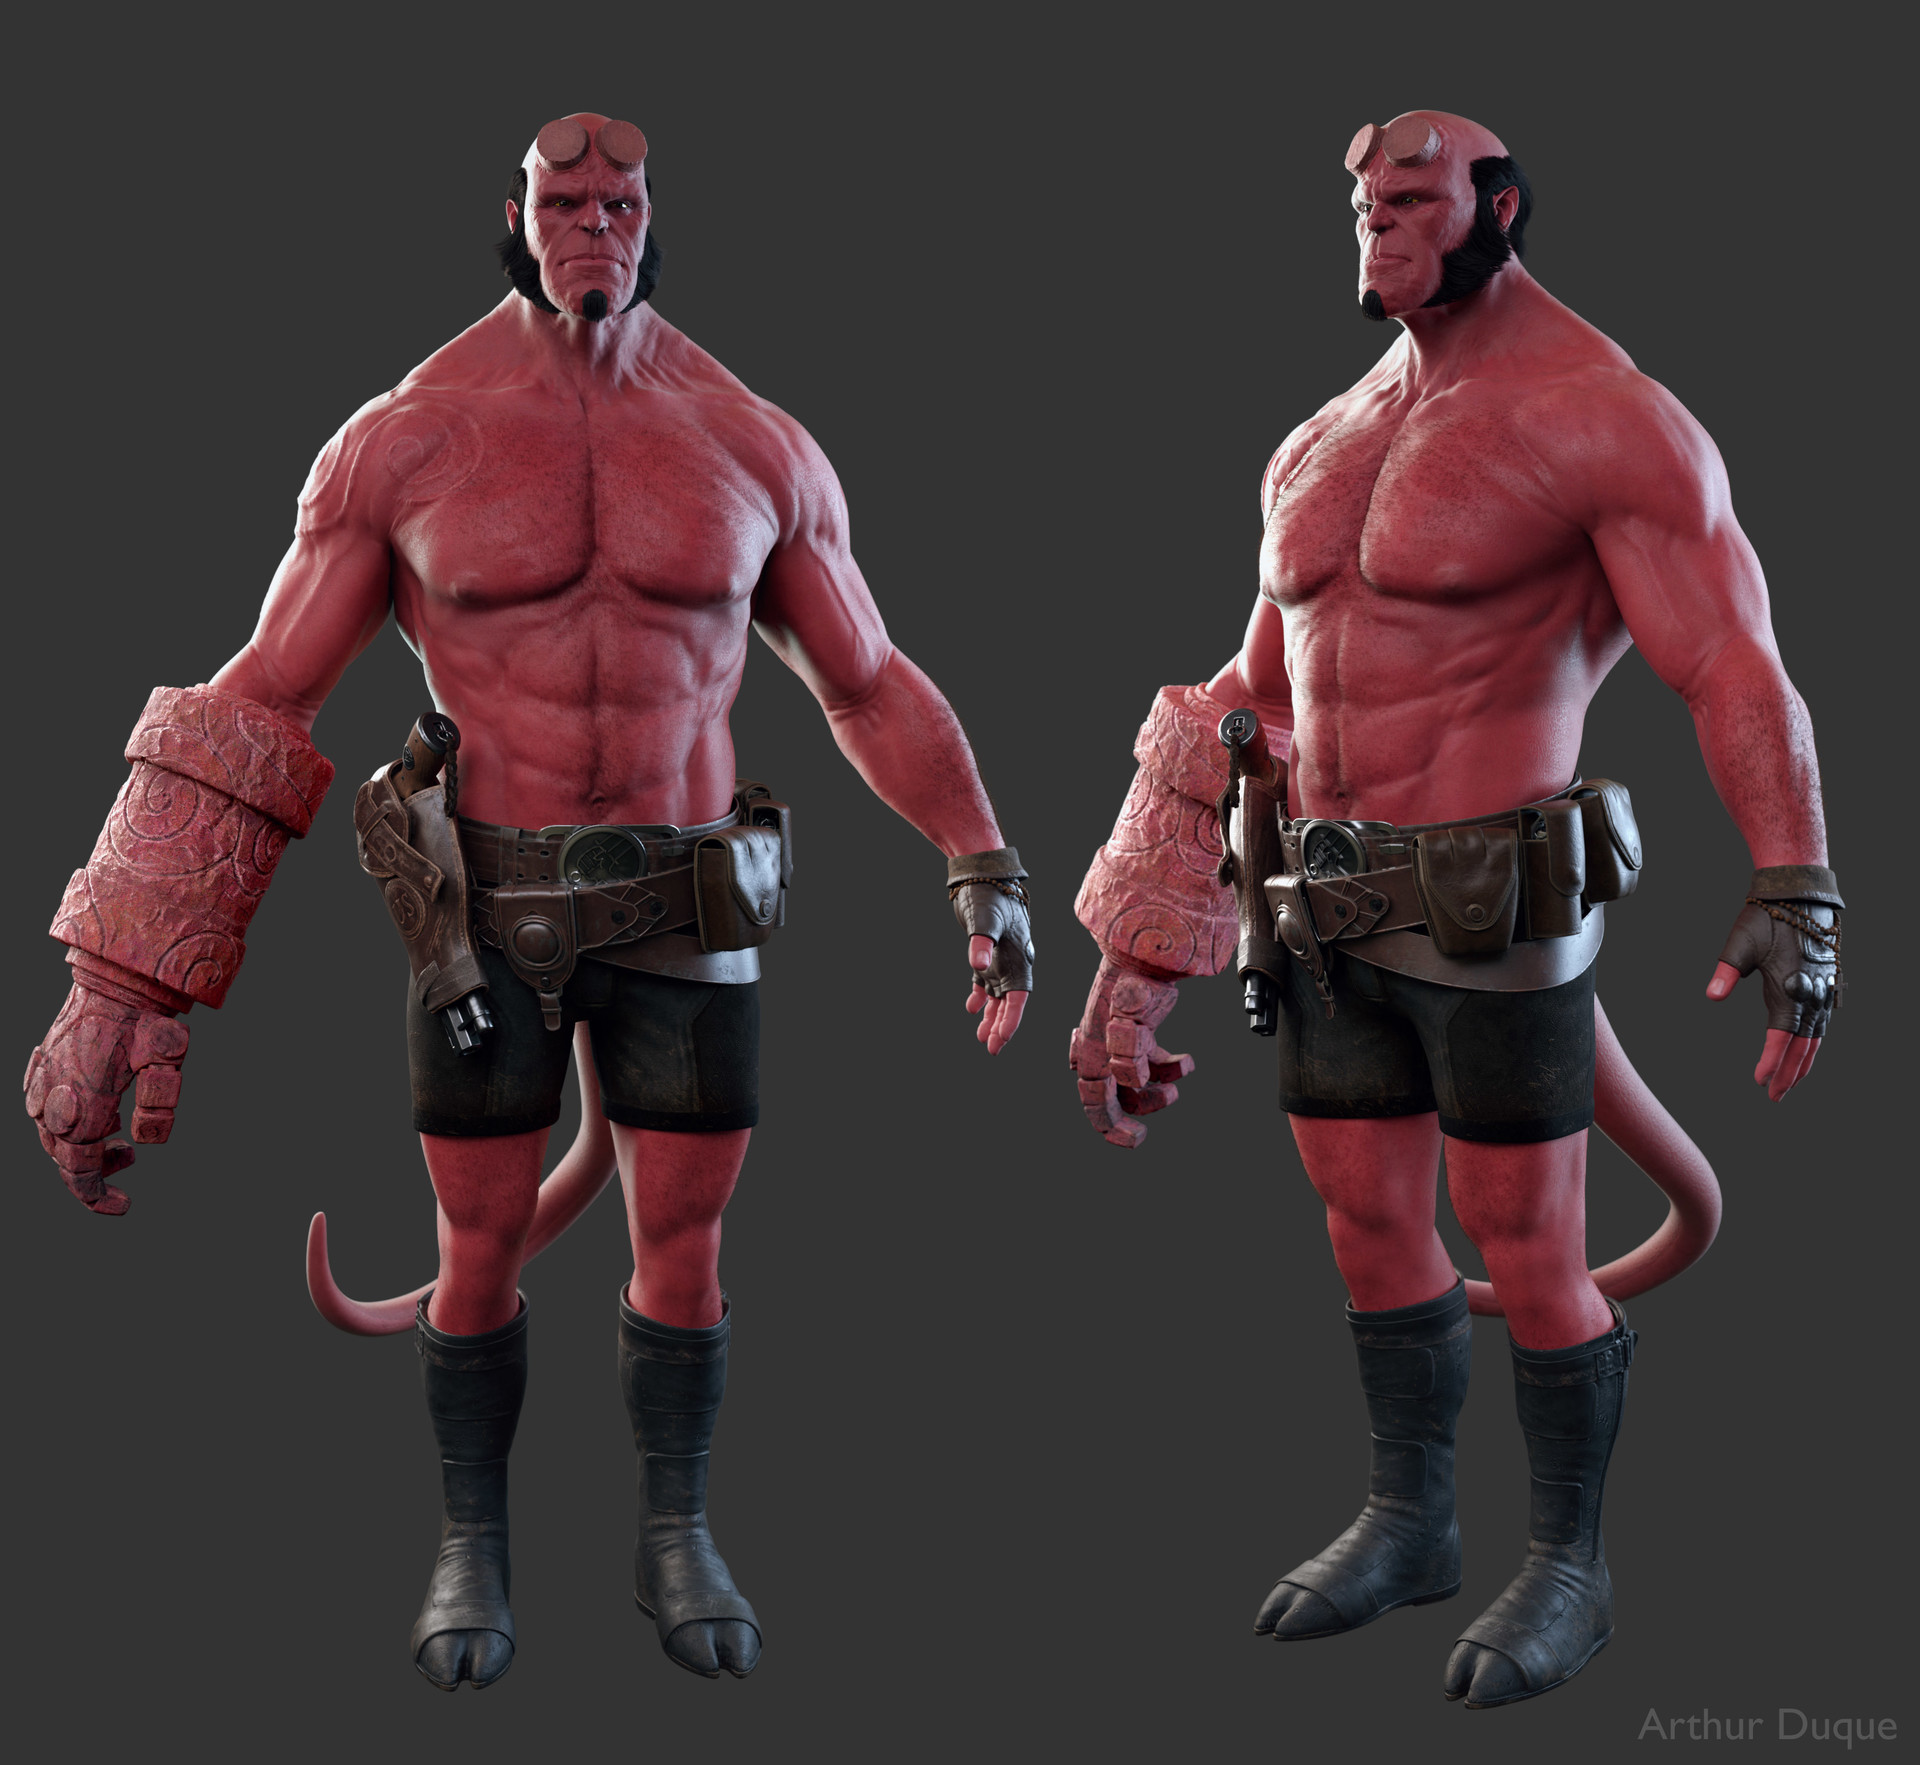 Arthur duque hellboy body 01